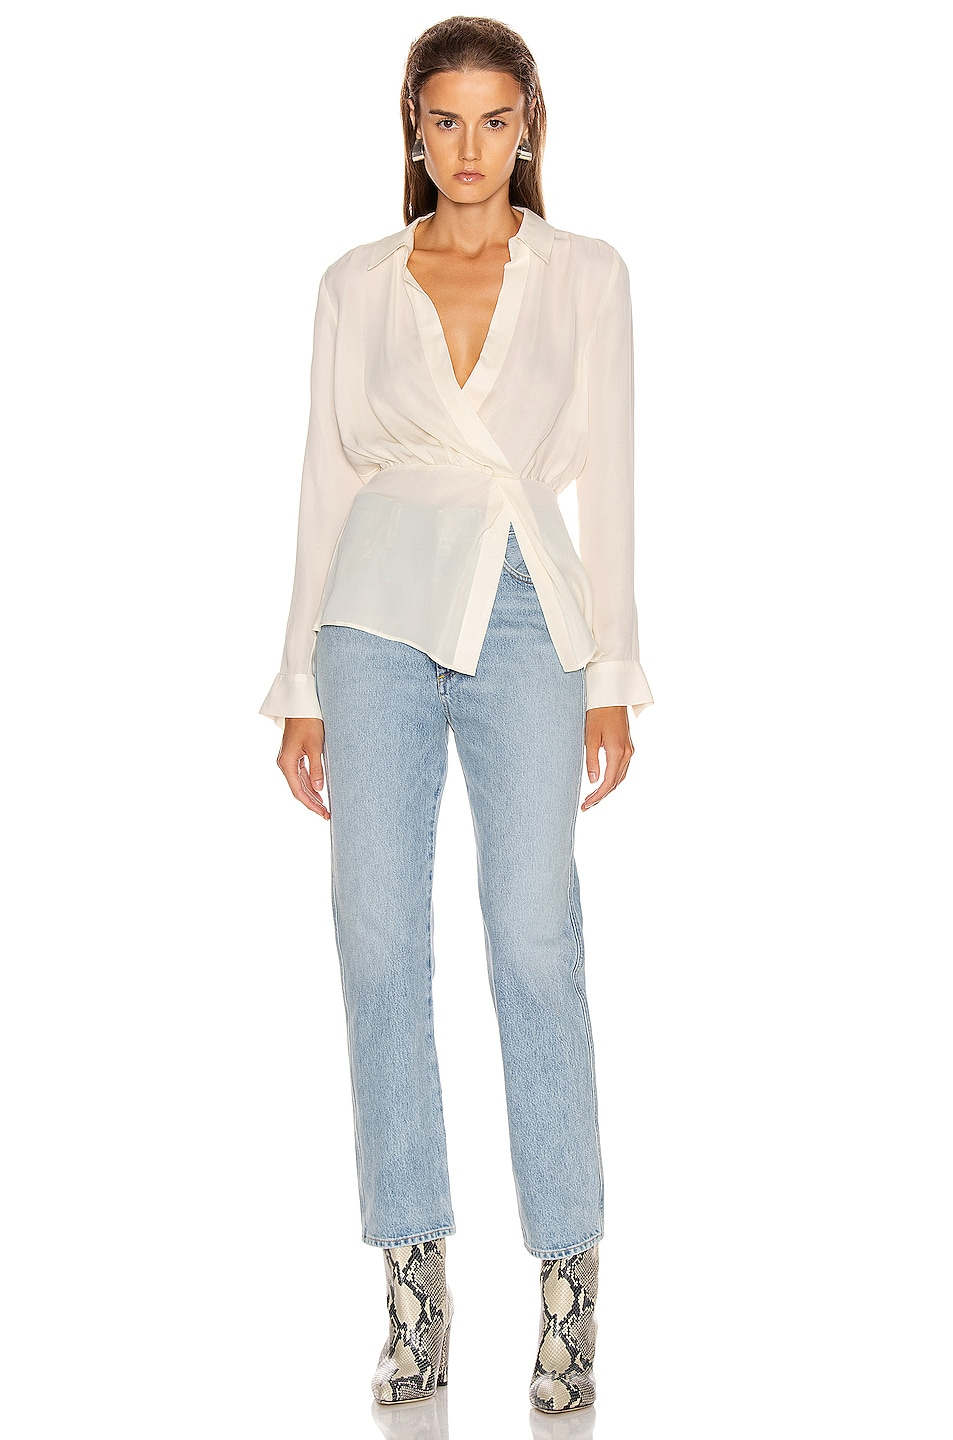 Image 5 of Veronica Beard Clyde Top in White